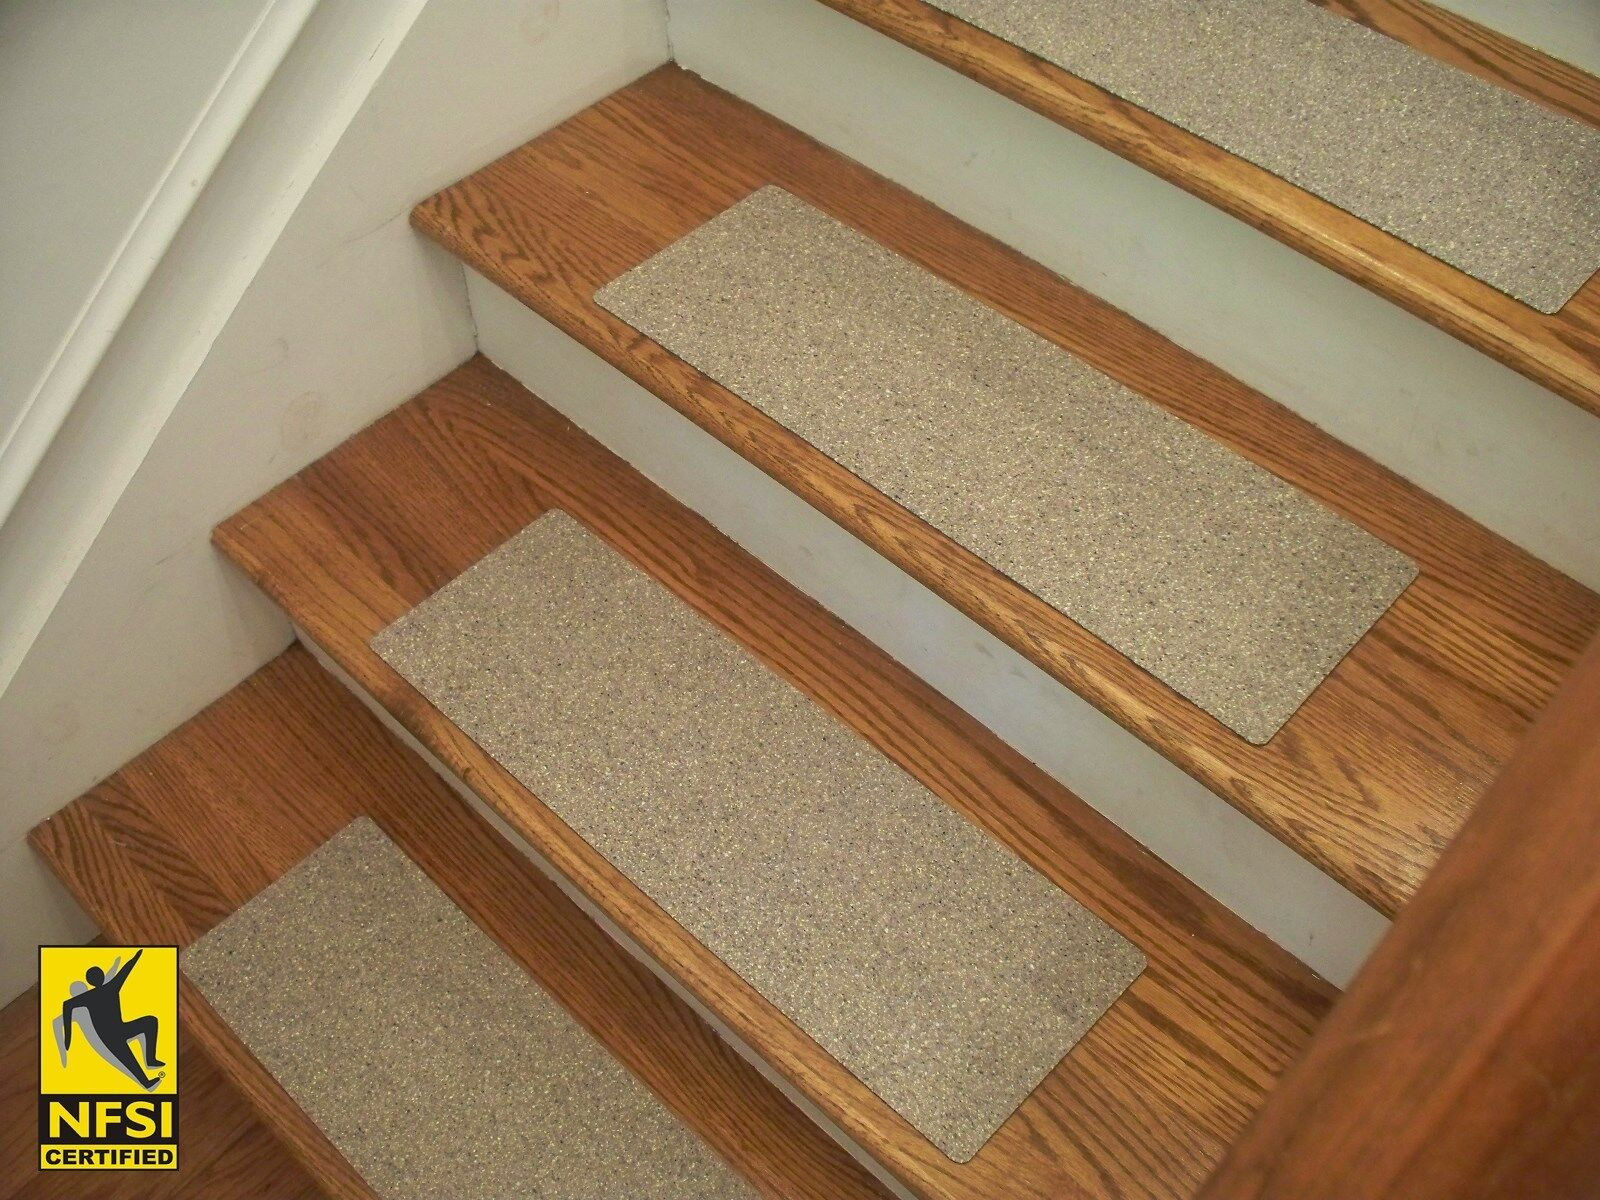 NFSI High Traction - Vinyl Stair Tread Sets - Greige (510) -  24  x 8